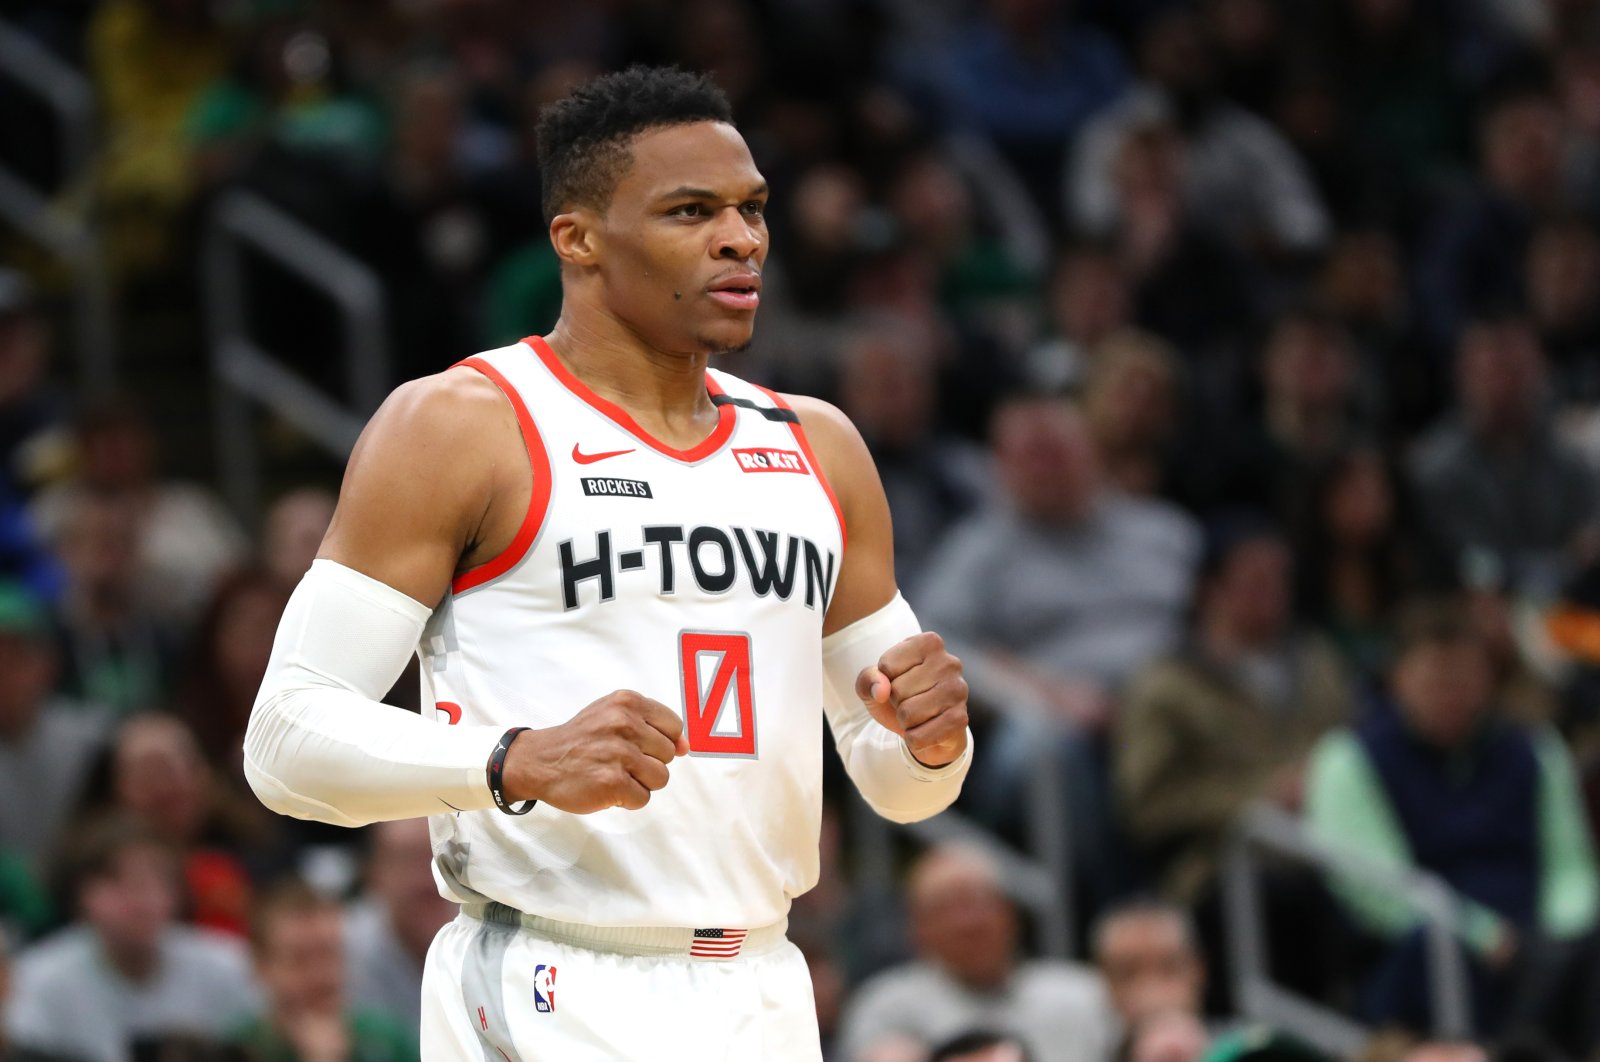 Russell Westbrook of the Houston Rockets reacts during an NBA game in Boston, Massachusetts, U.S., Feb. 29, 2020. (AFP Photo)